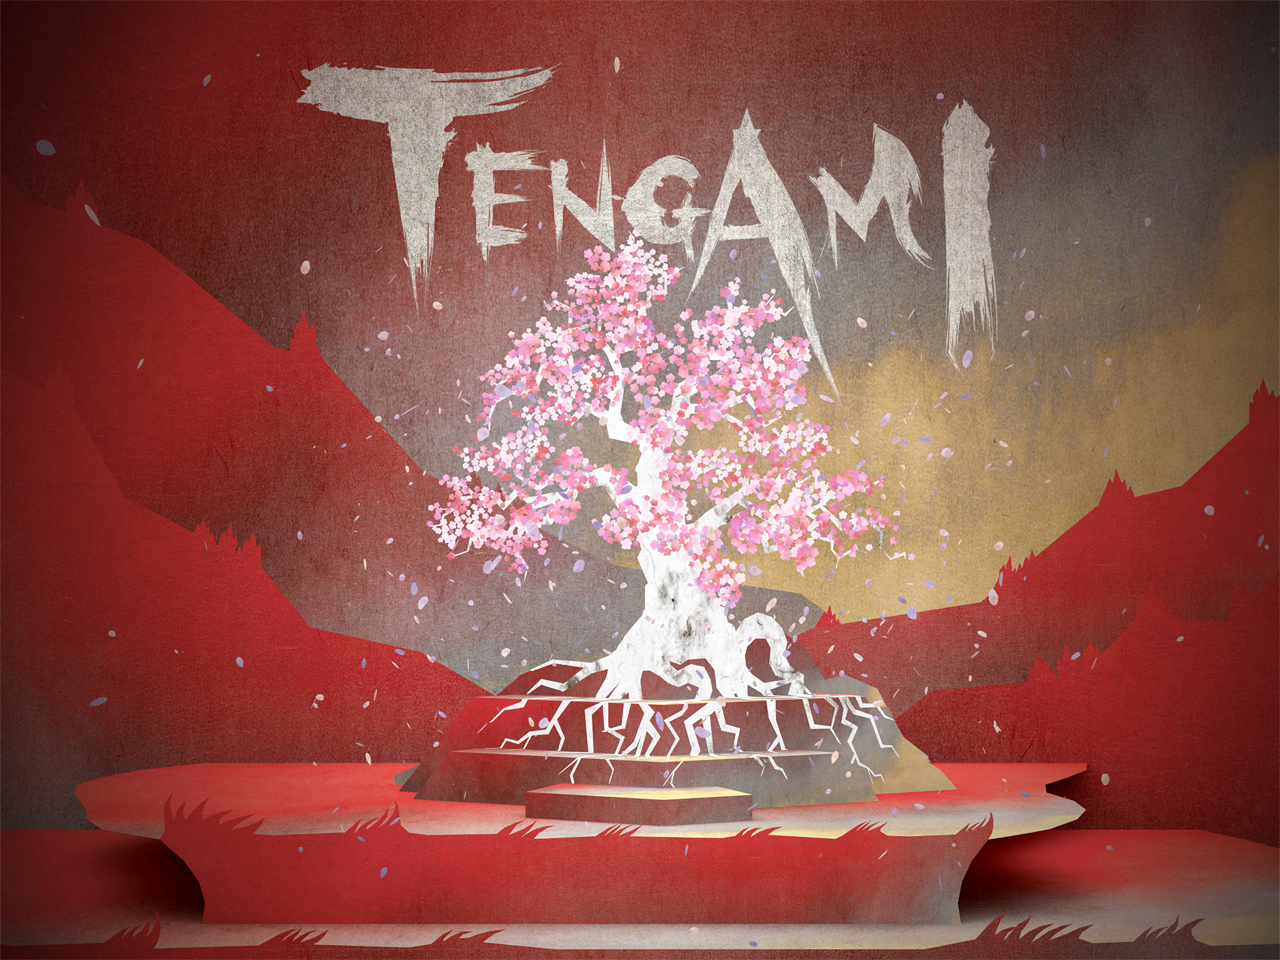 tengami_artwork_red_cherry_tree.png